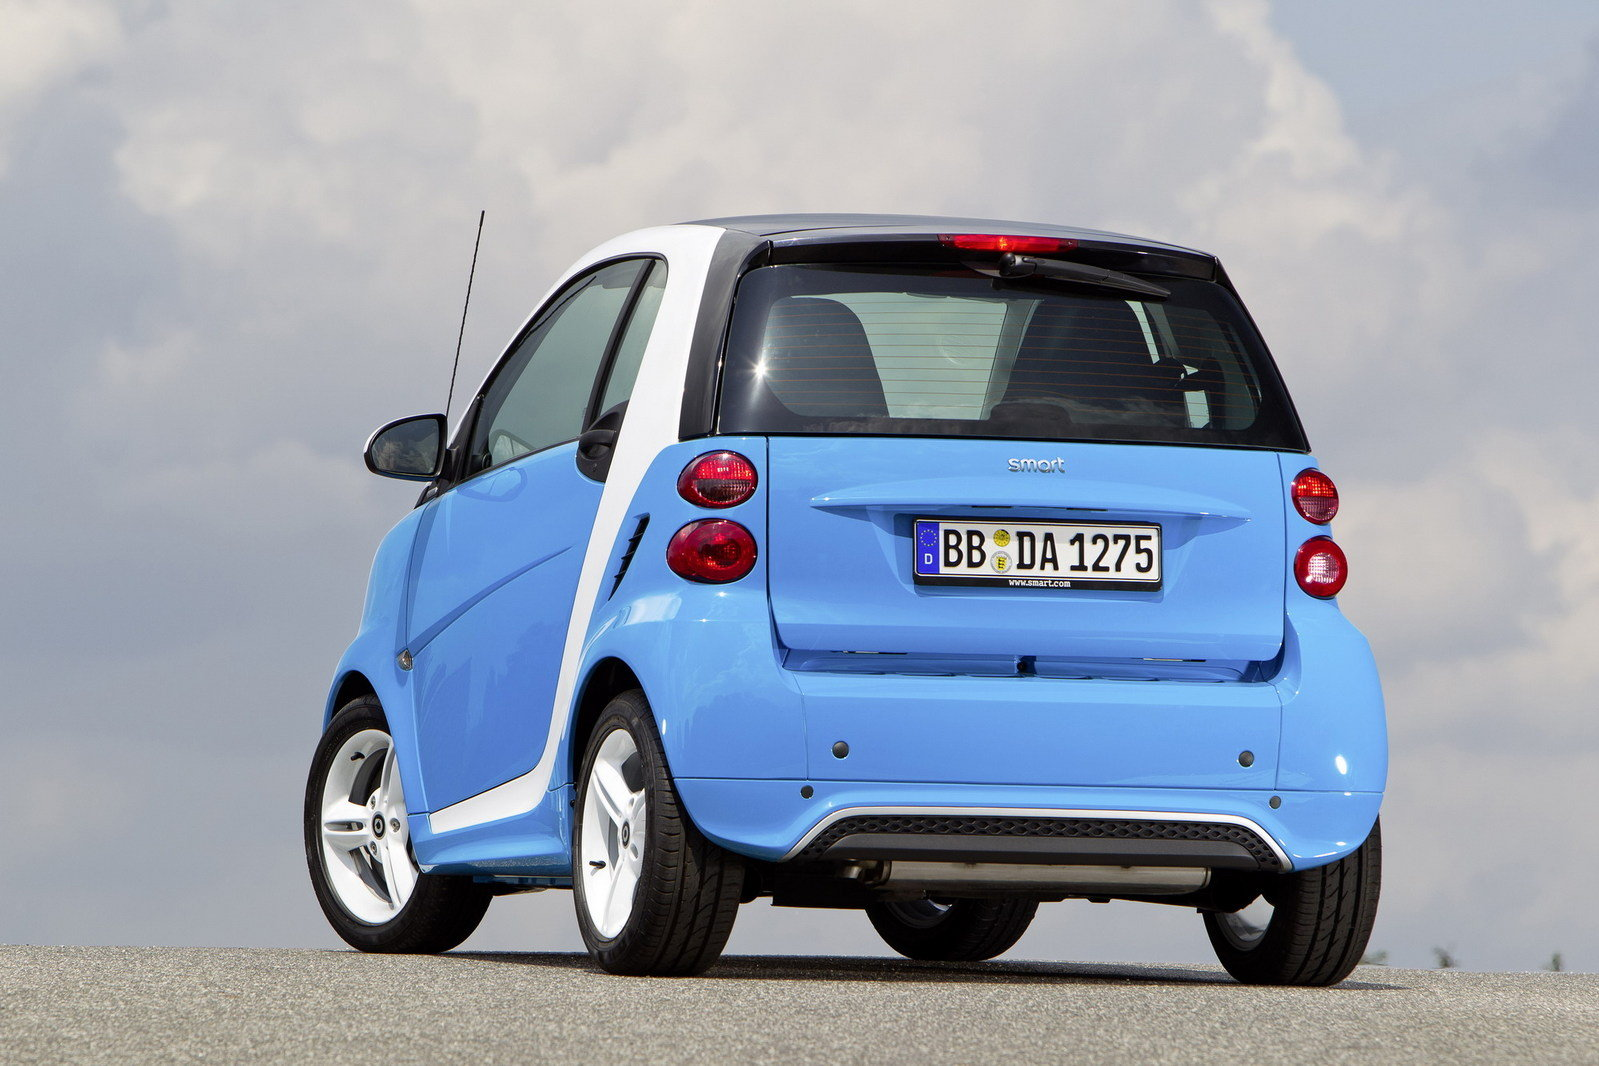 http://pictures.topspeed.com/IMG/crop/201206/smart-fortwo-iceshin-2_1600x0w.jpg